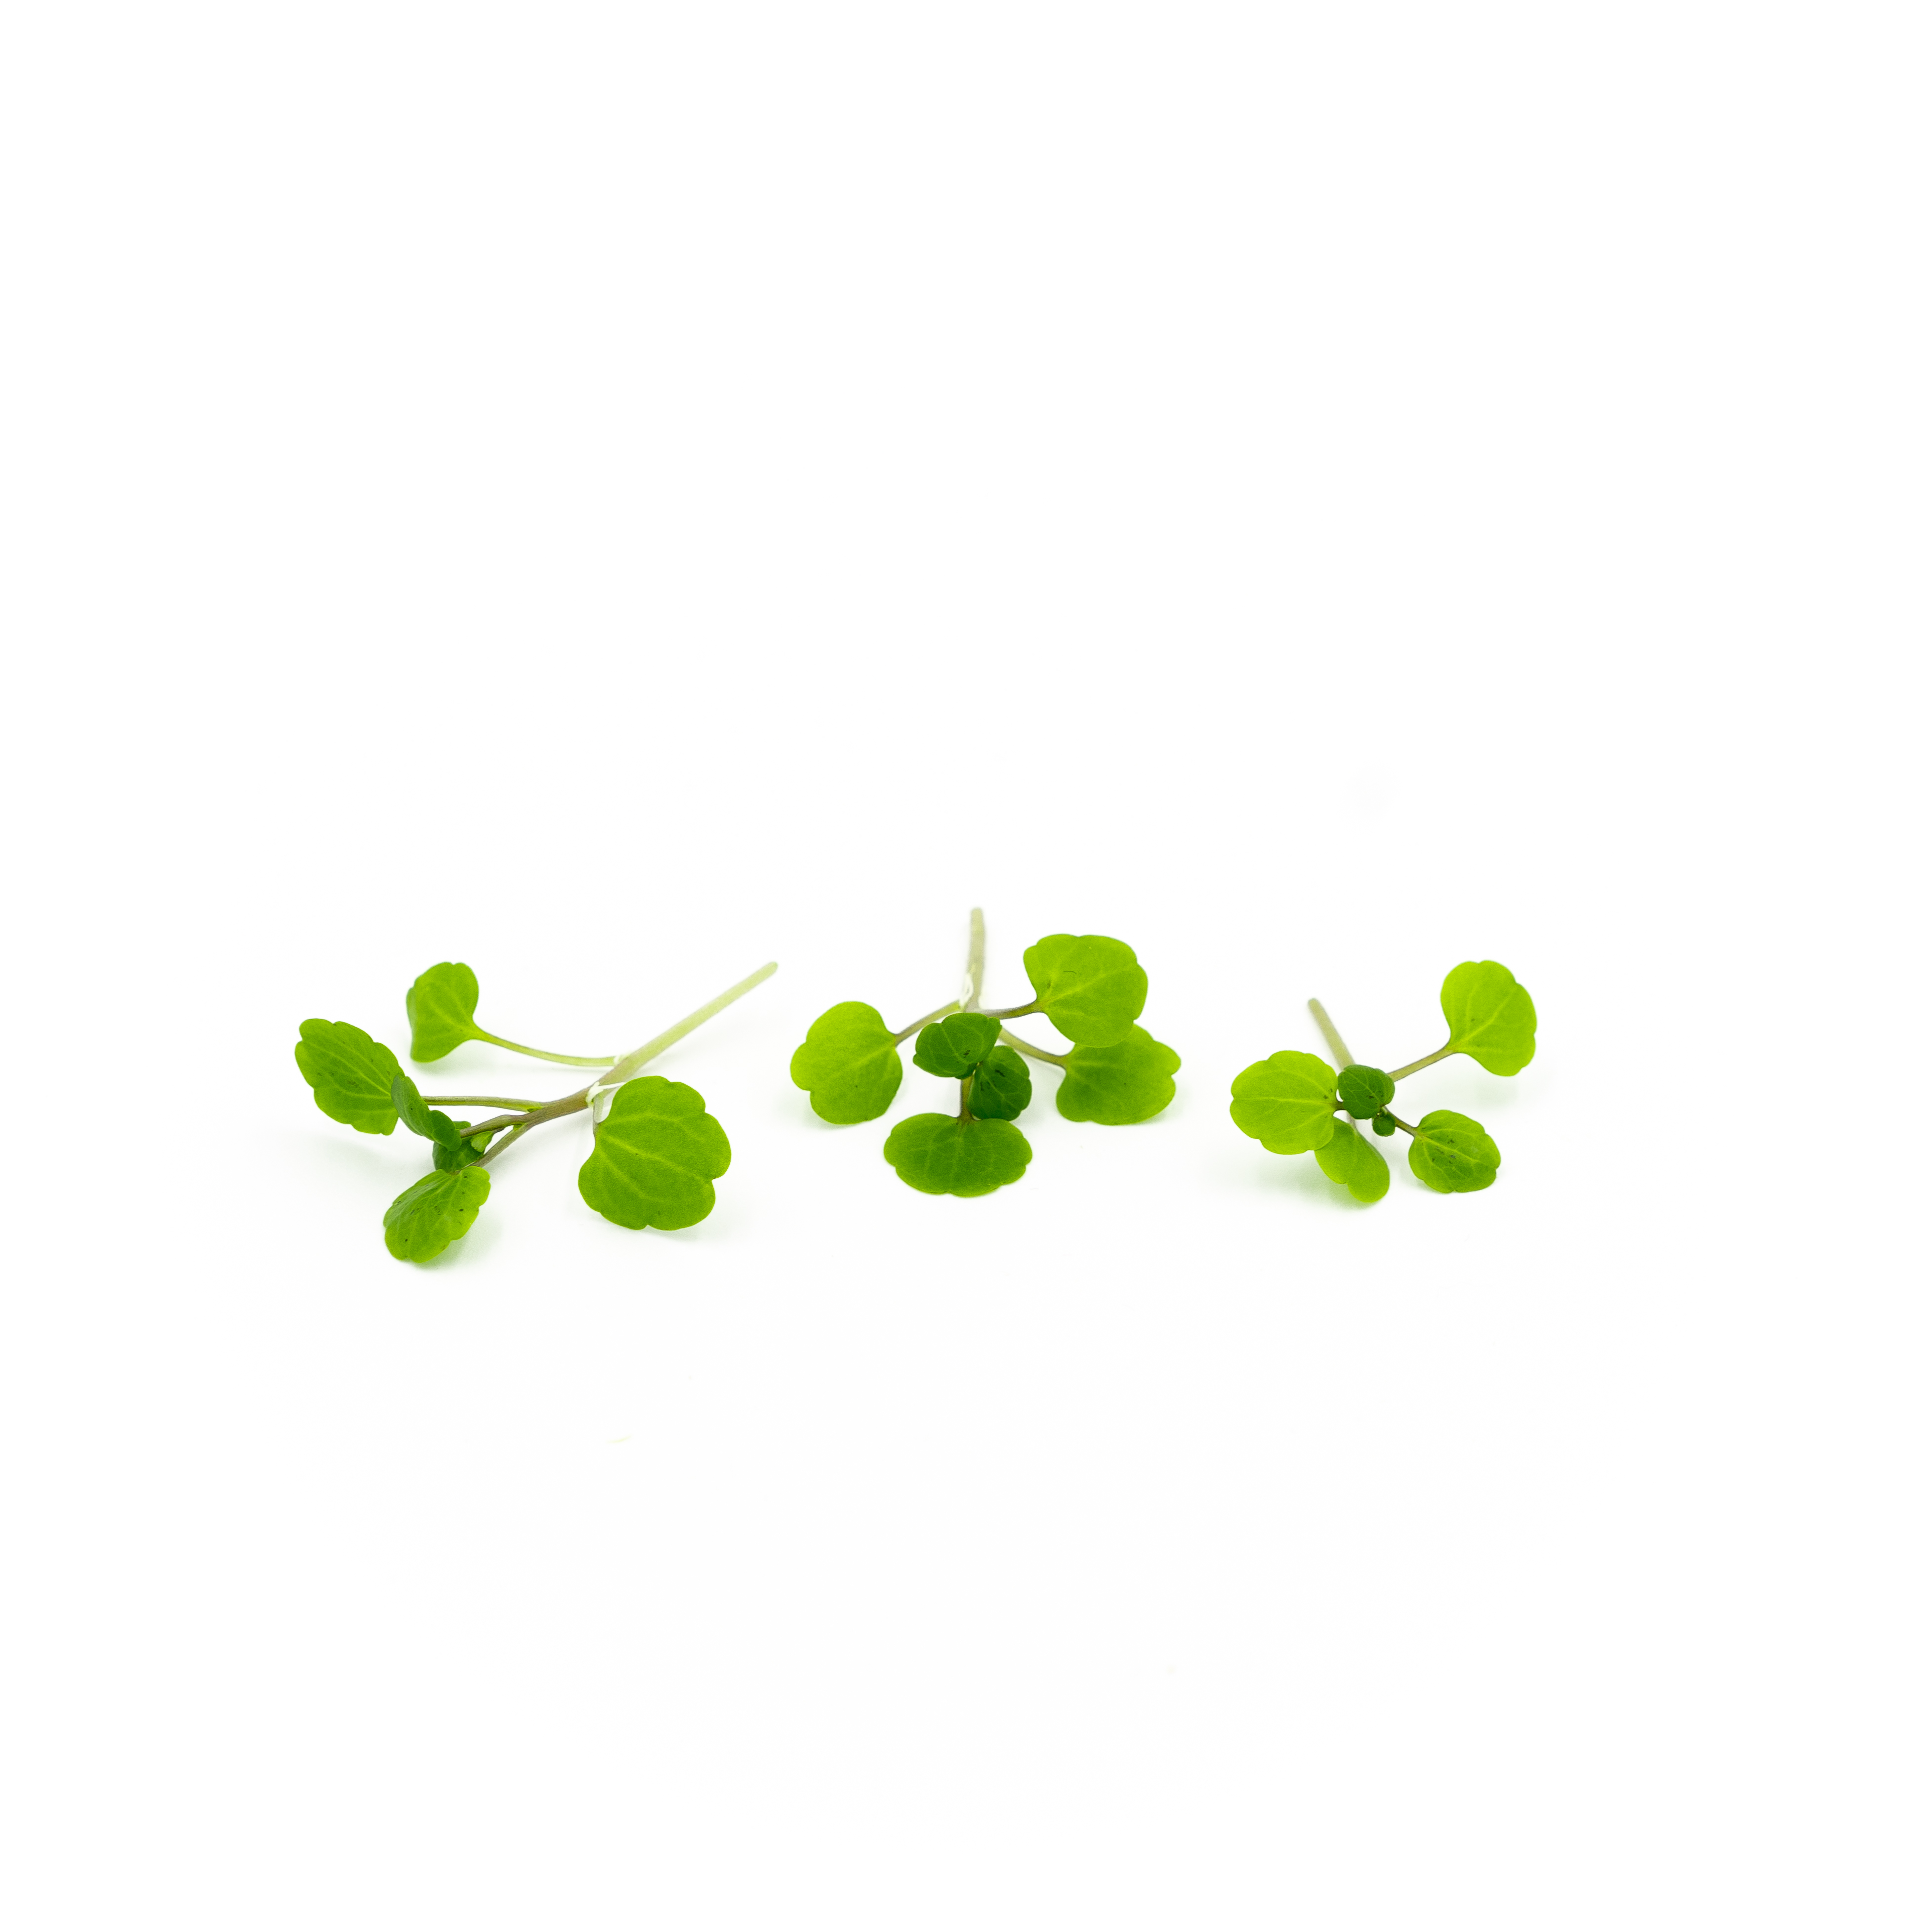 Peppery watercress flavor in small crisp leaves